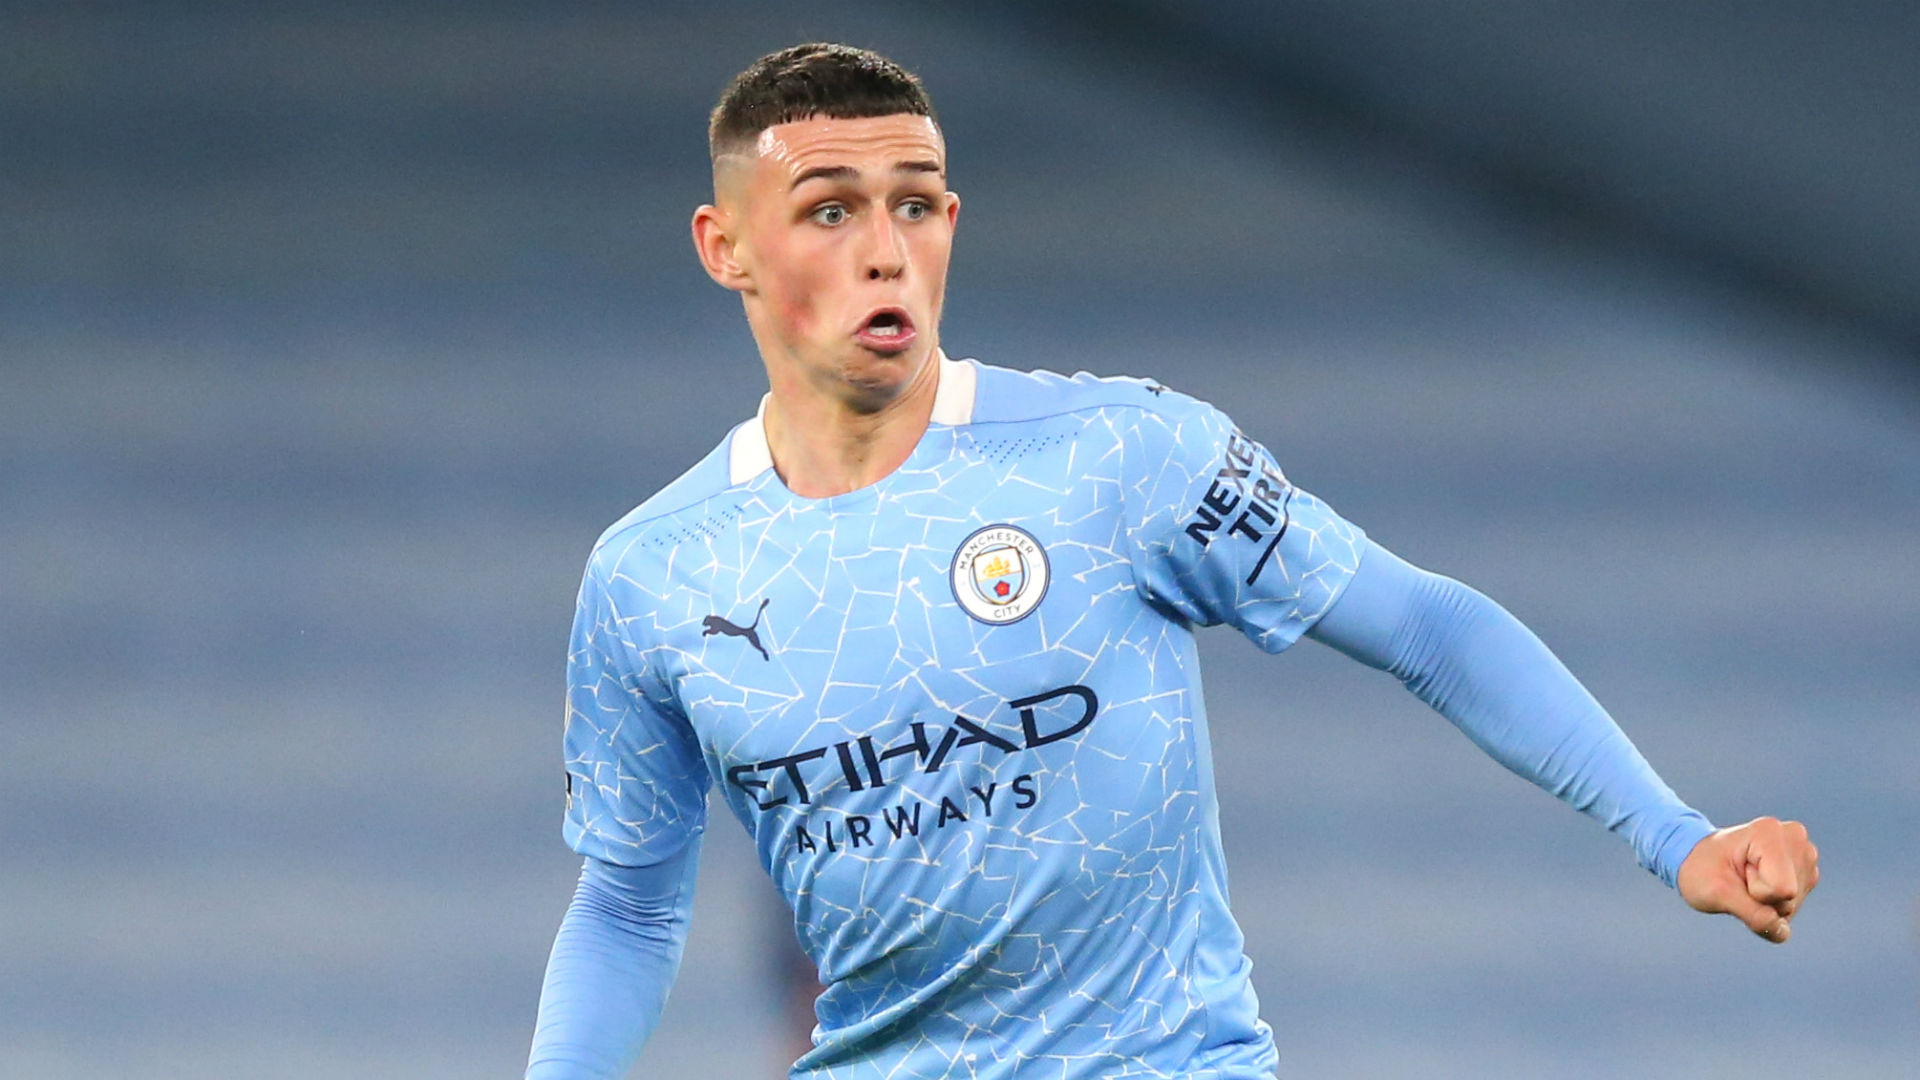 Foden will reach new level when he learns to 'slow down', says Man City coach Guardiola